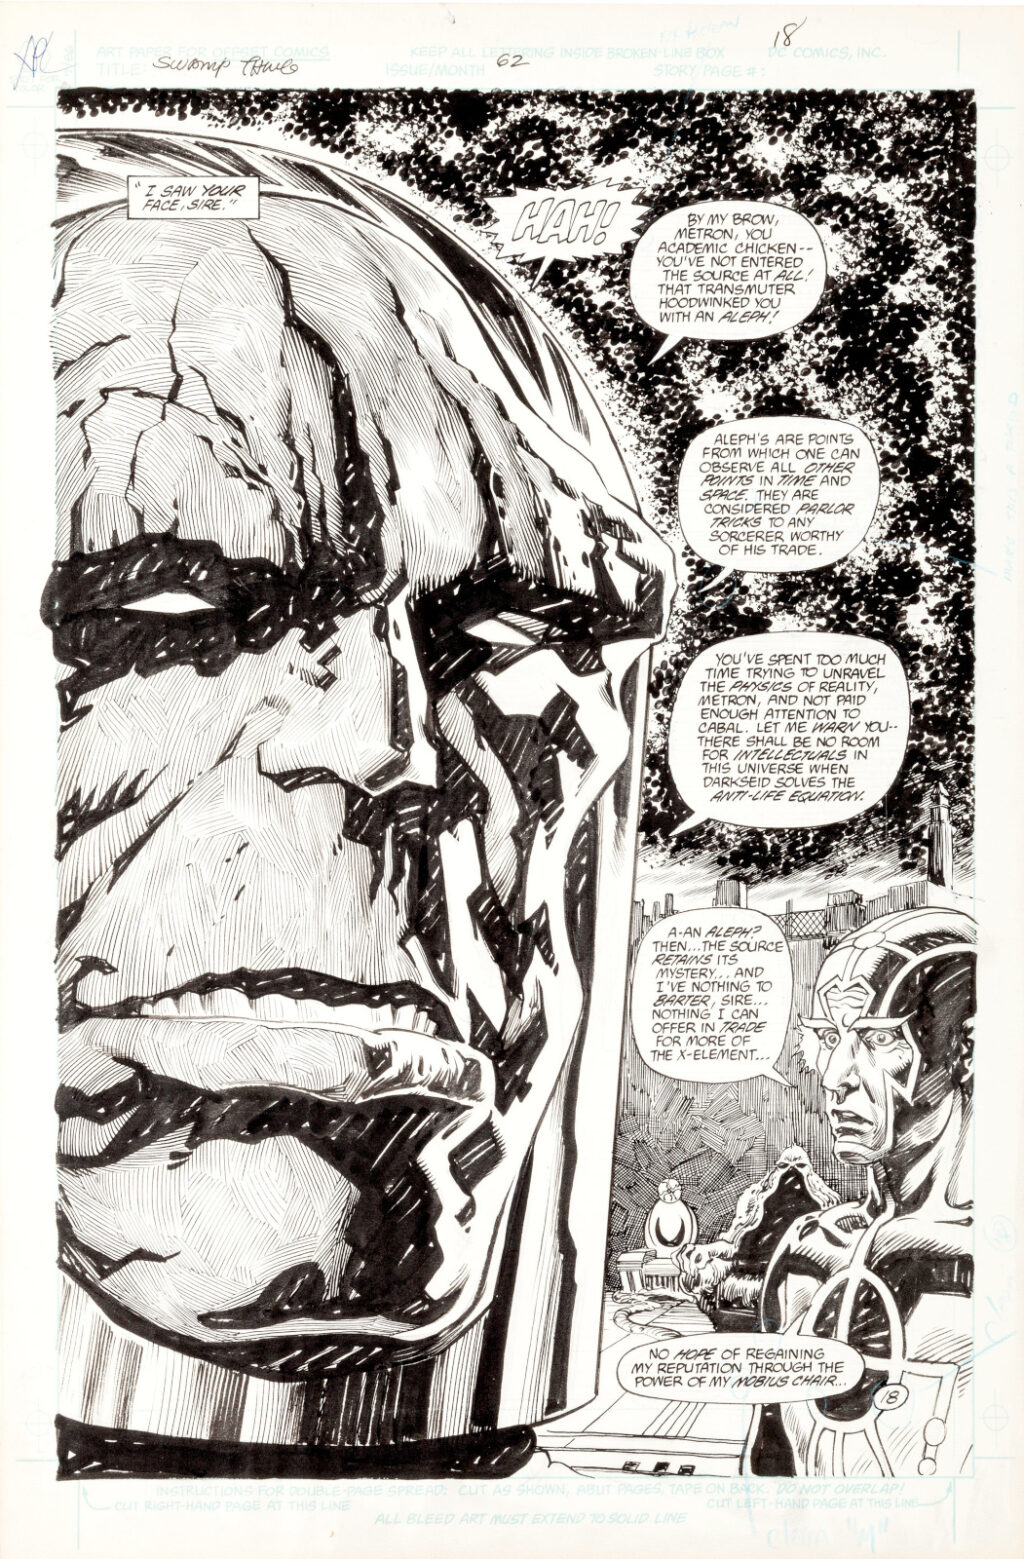 Swamp Thing issue 62 Pages 18 by Rick Veitch and Alfredo Alcala